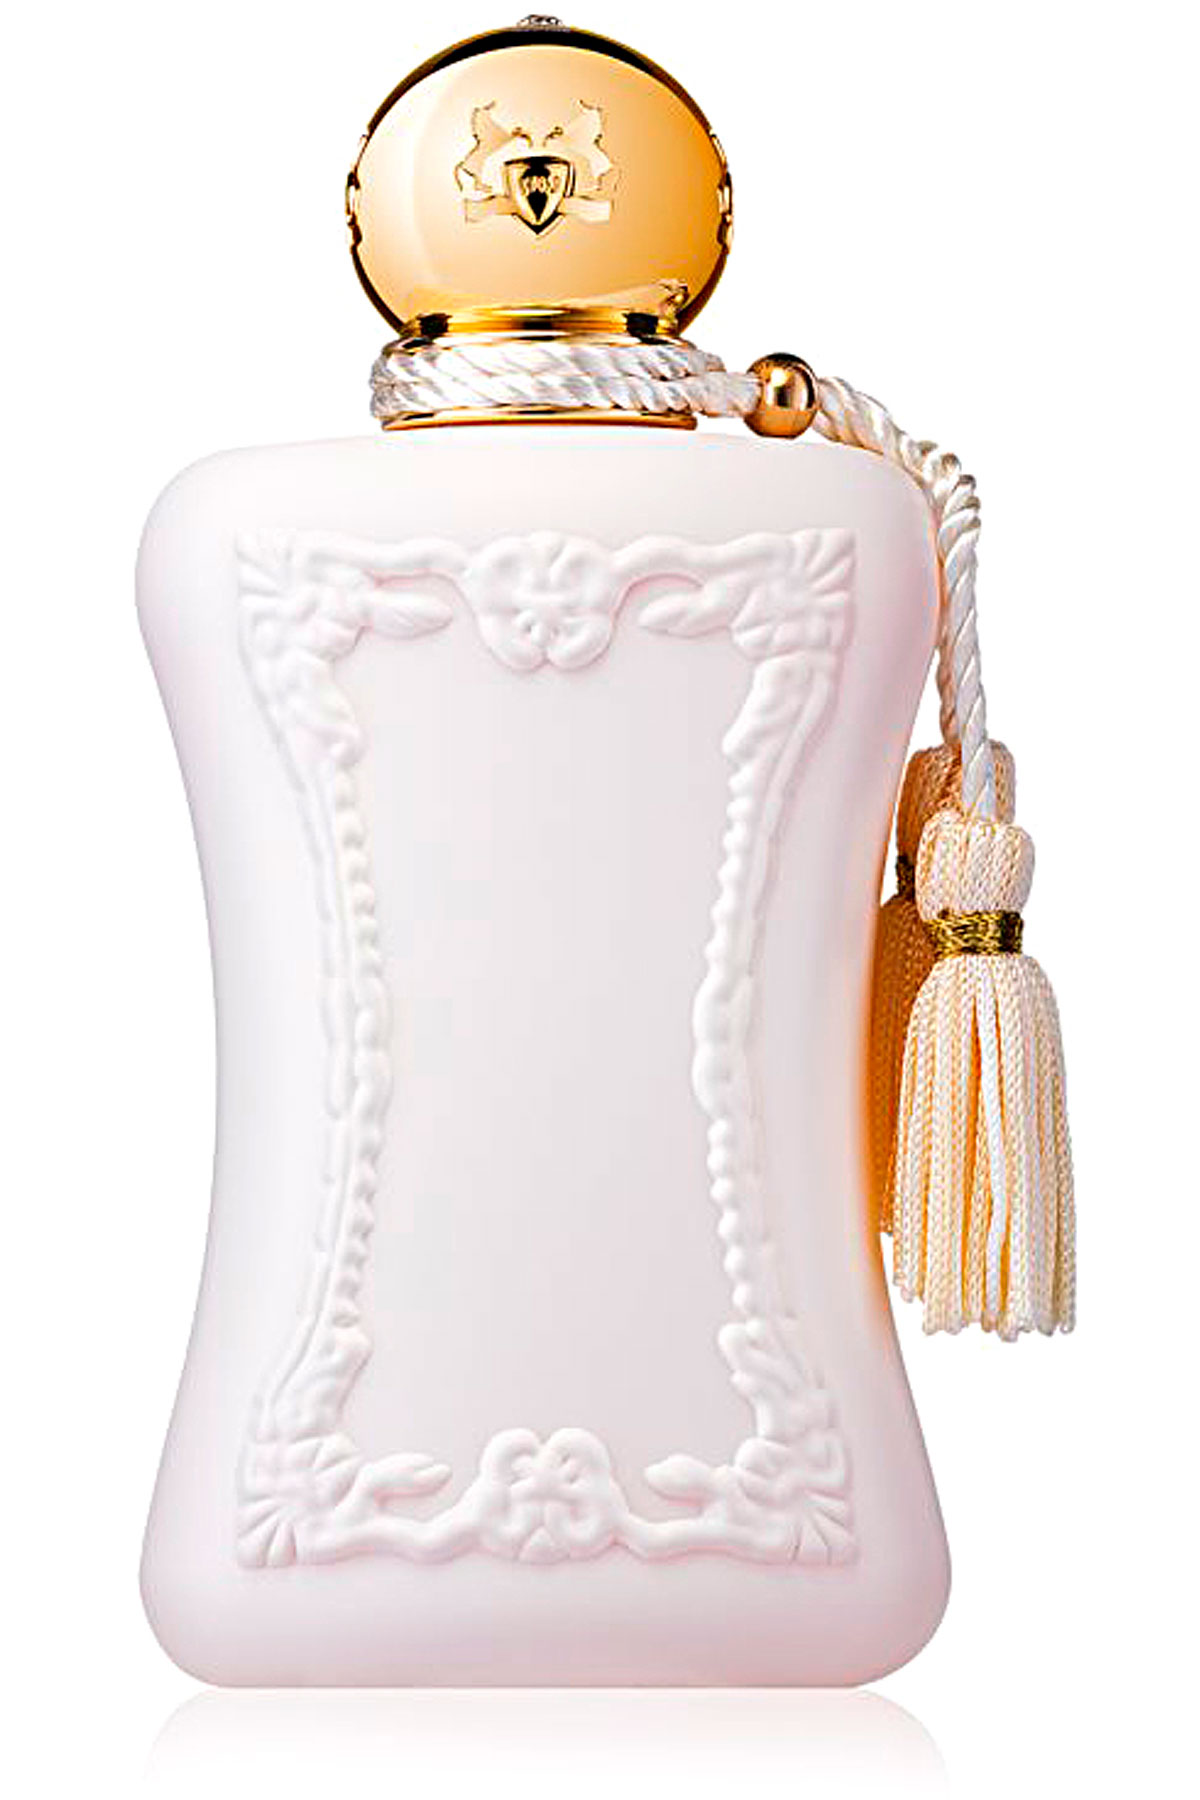 Parfums de Marly Fragrances for Women, Sedbury - Eau De Parfum - 75 Ml, 2019, 75 ml